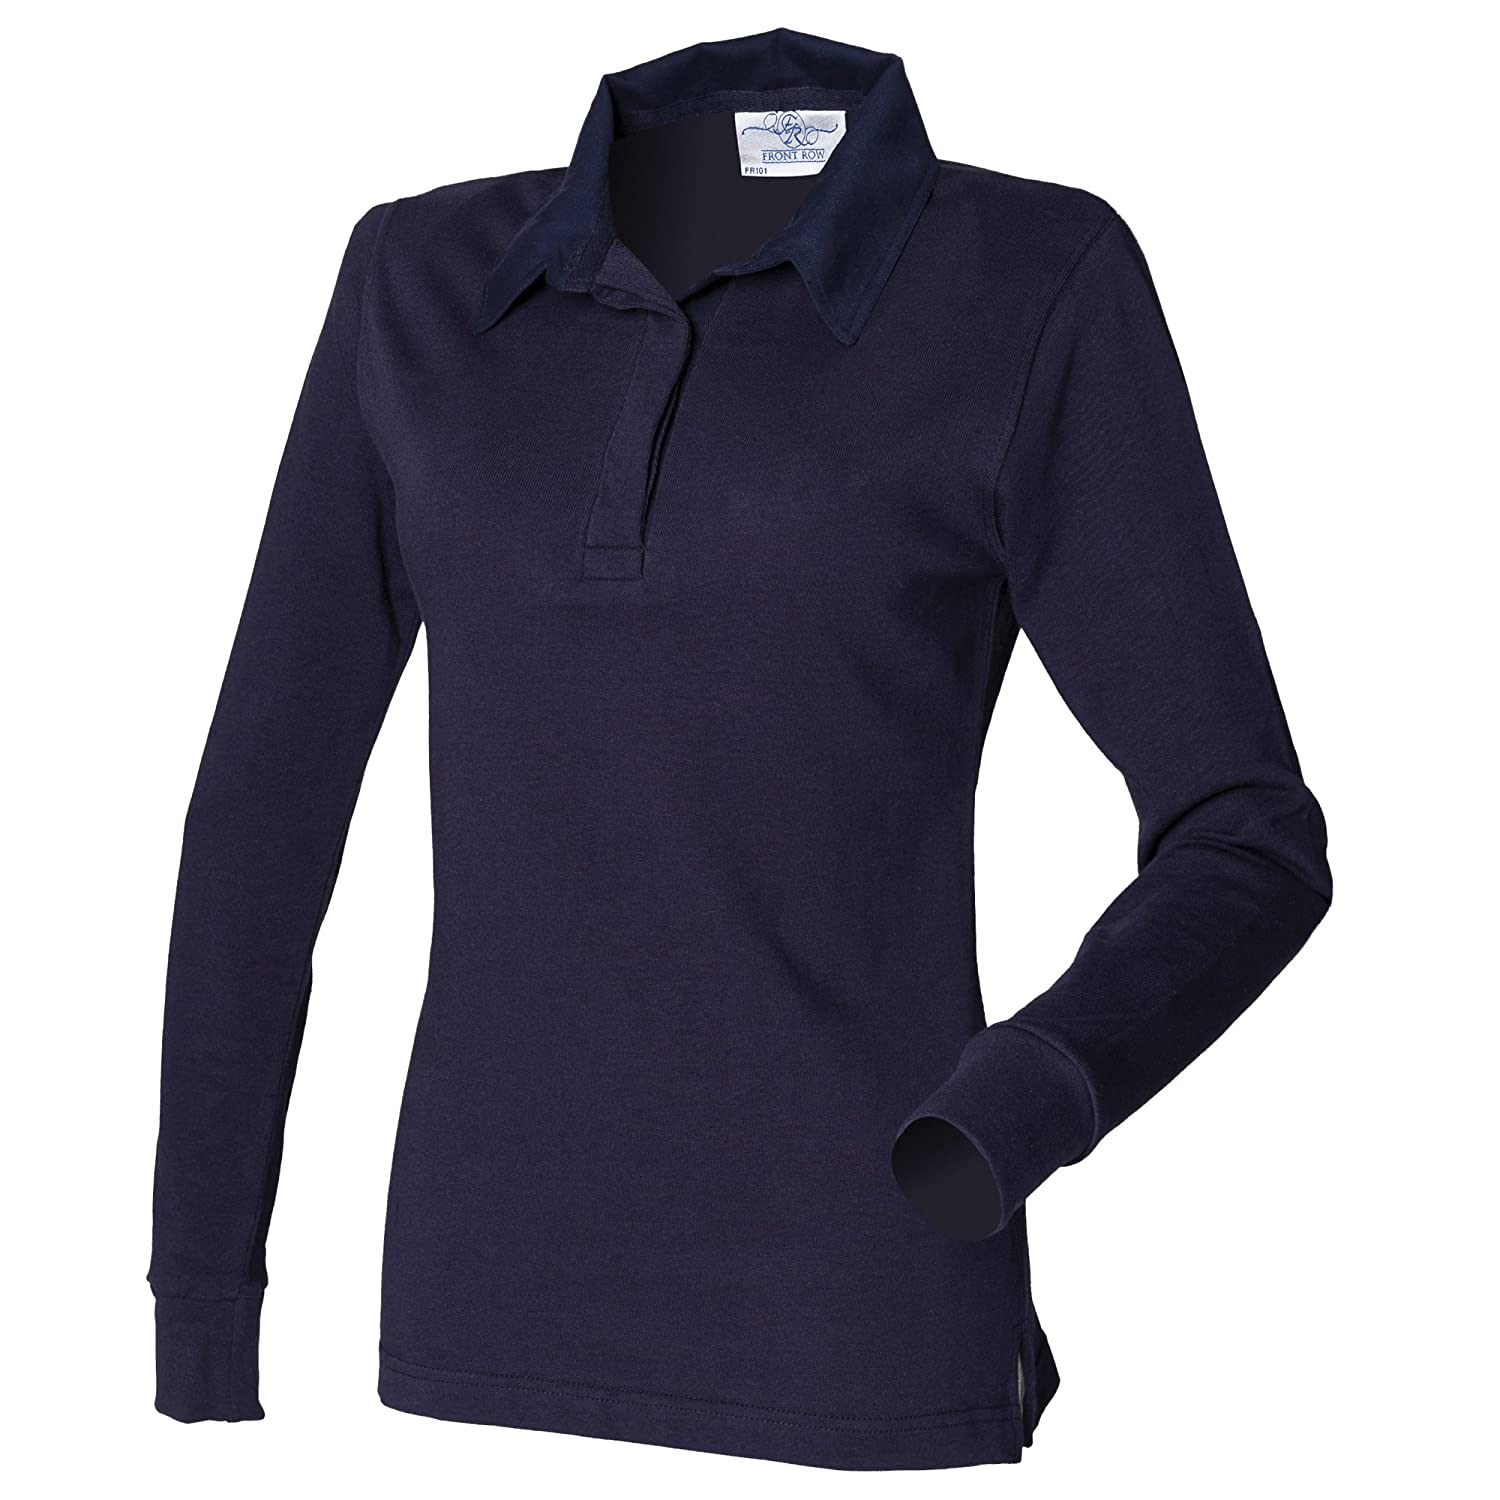 a4b46b17aa Front Row Womens/Ladies Long Sleeve Plain Sports Rugby Polo Shirt at Amazon  Women's Clothing store: